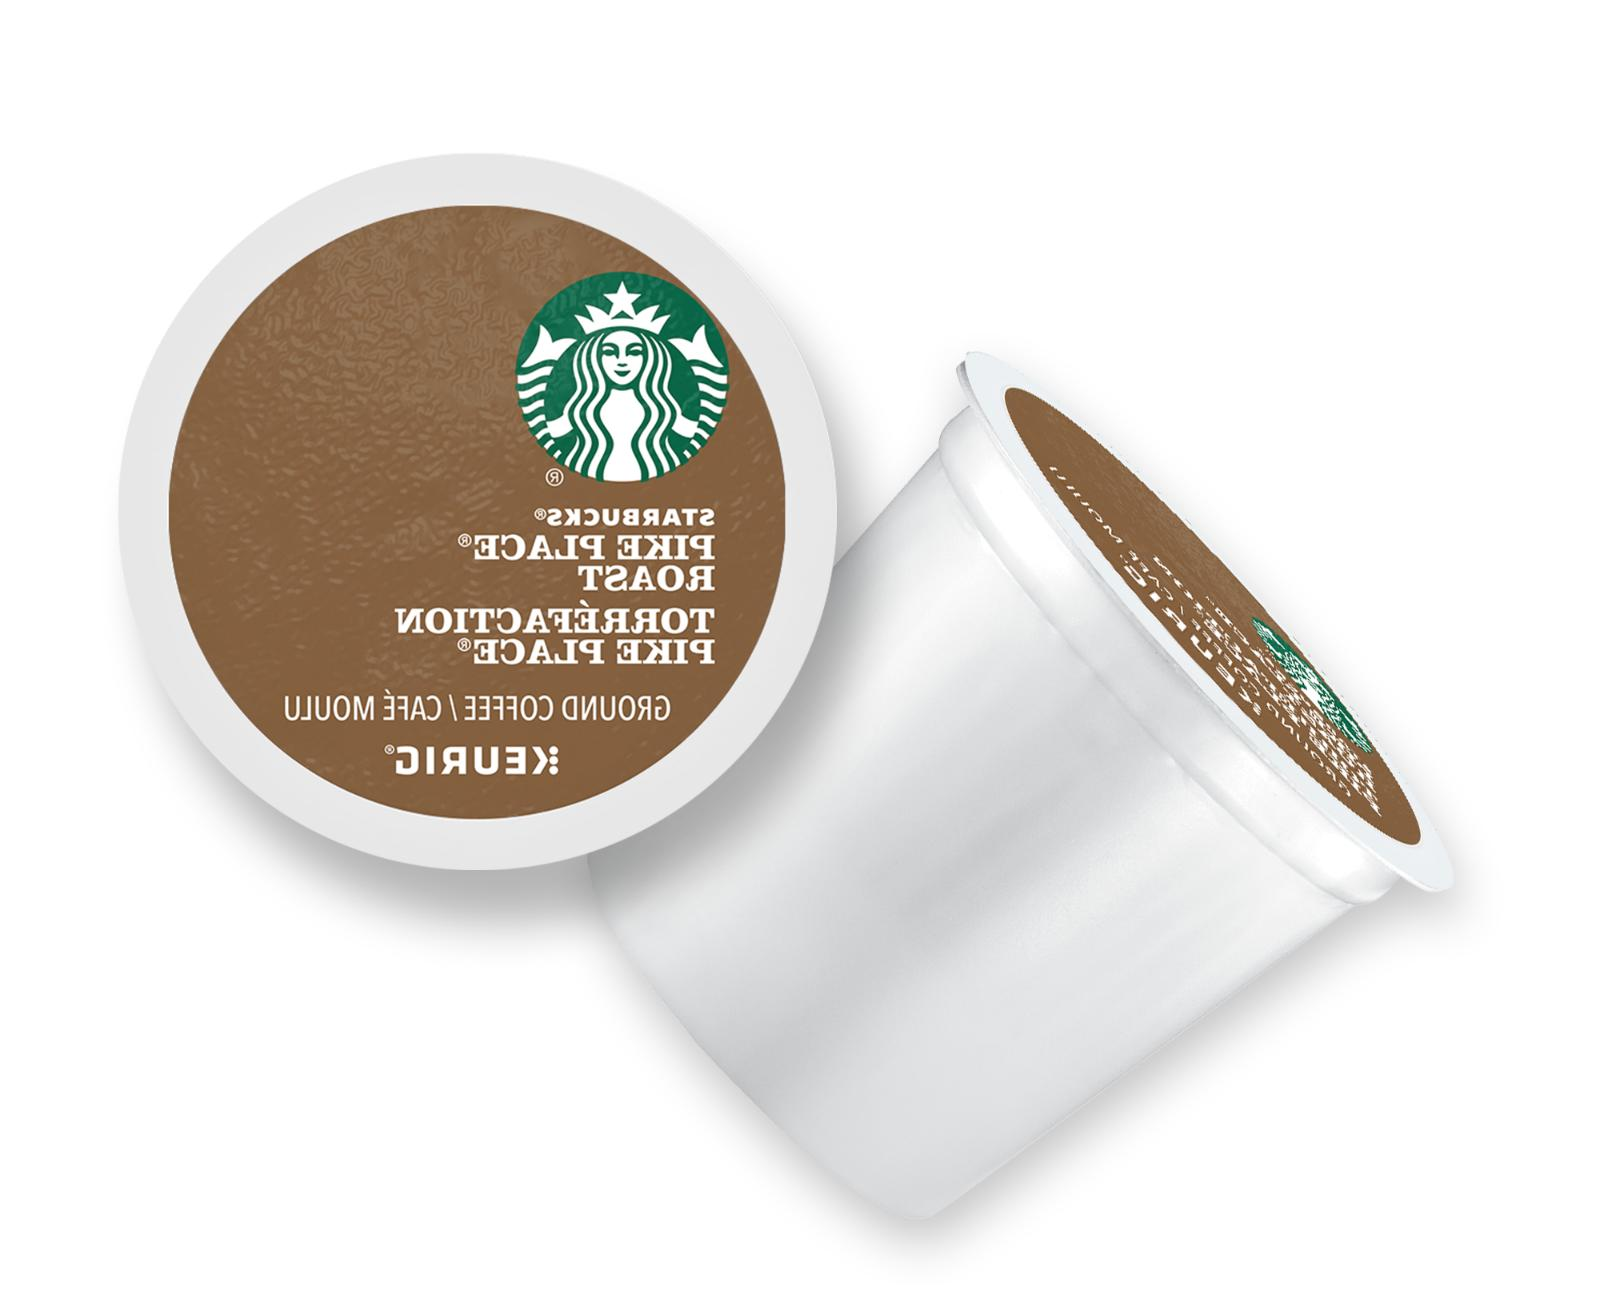 Starbucks Keurig ANY FLAVOR